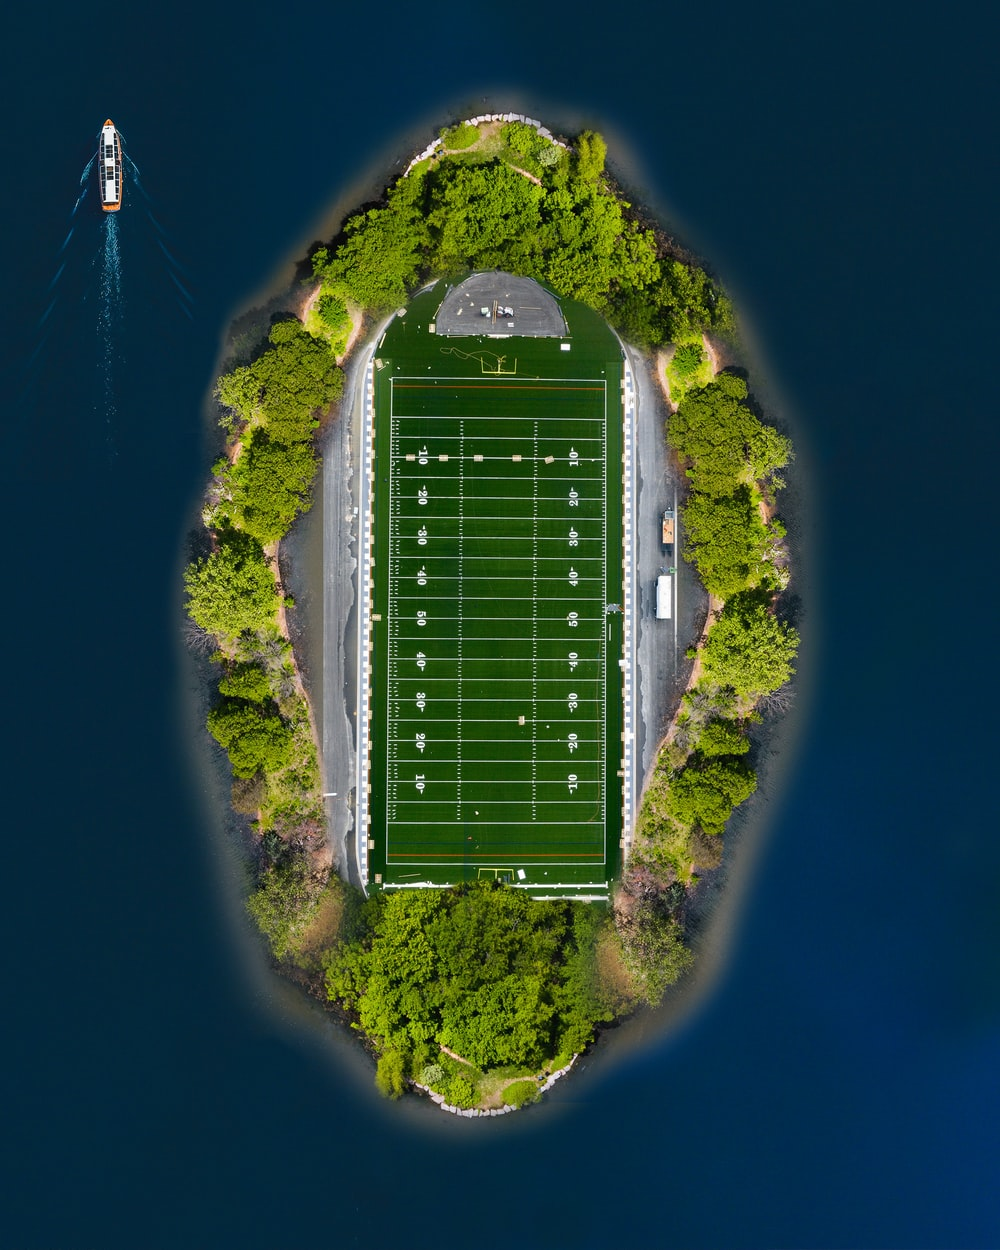 aerial view of green stadium on top of hill during daytime